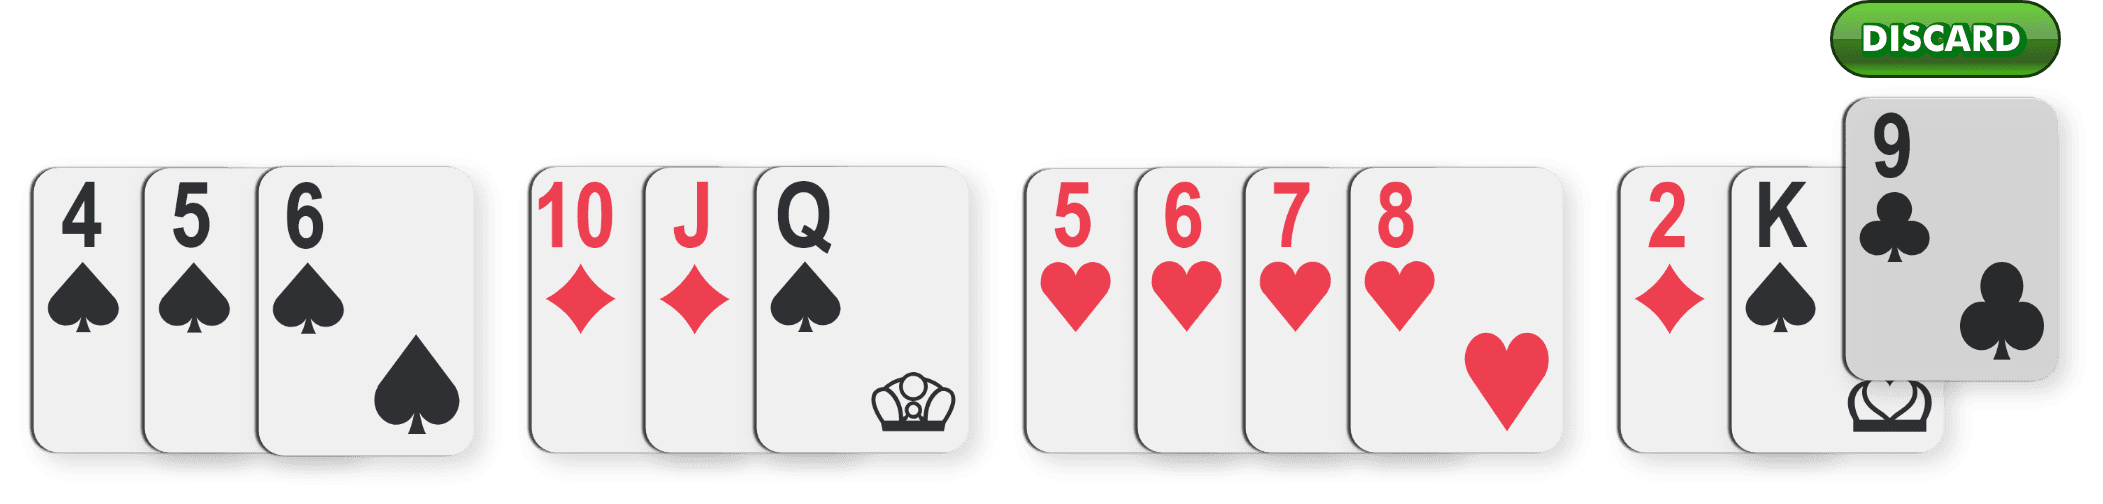 How to Discard Rummy Card Game